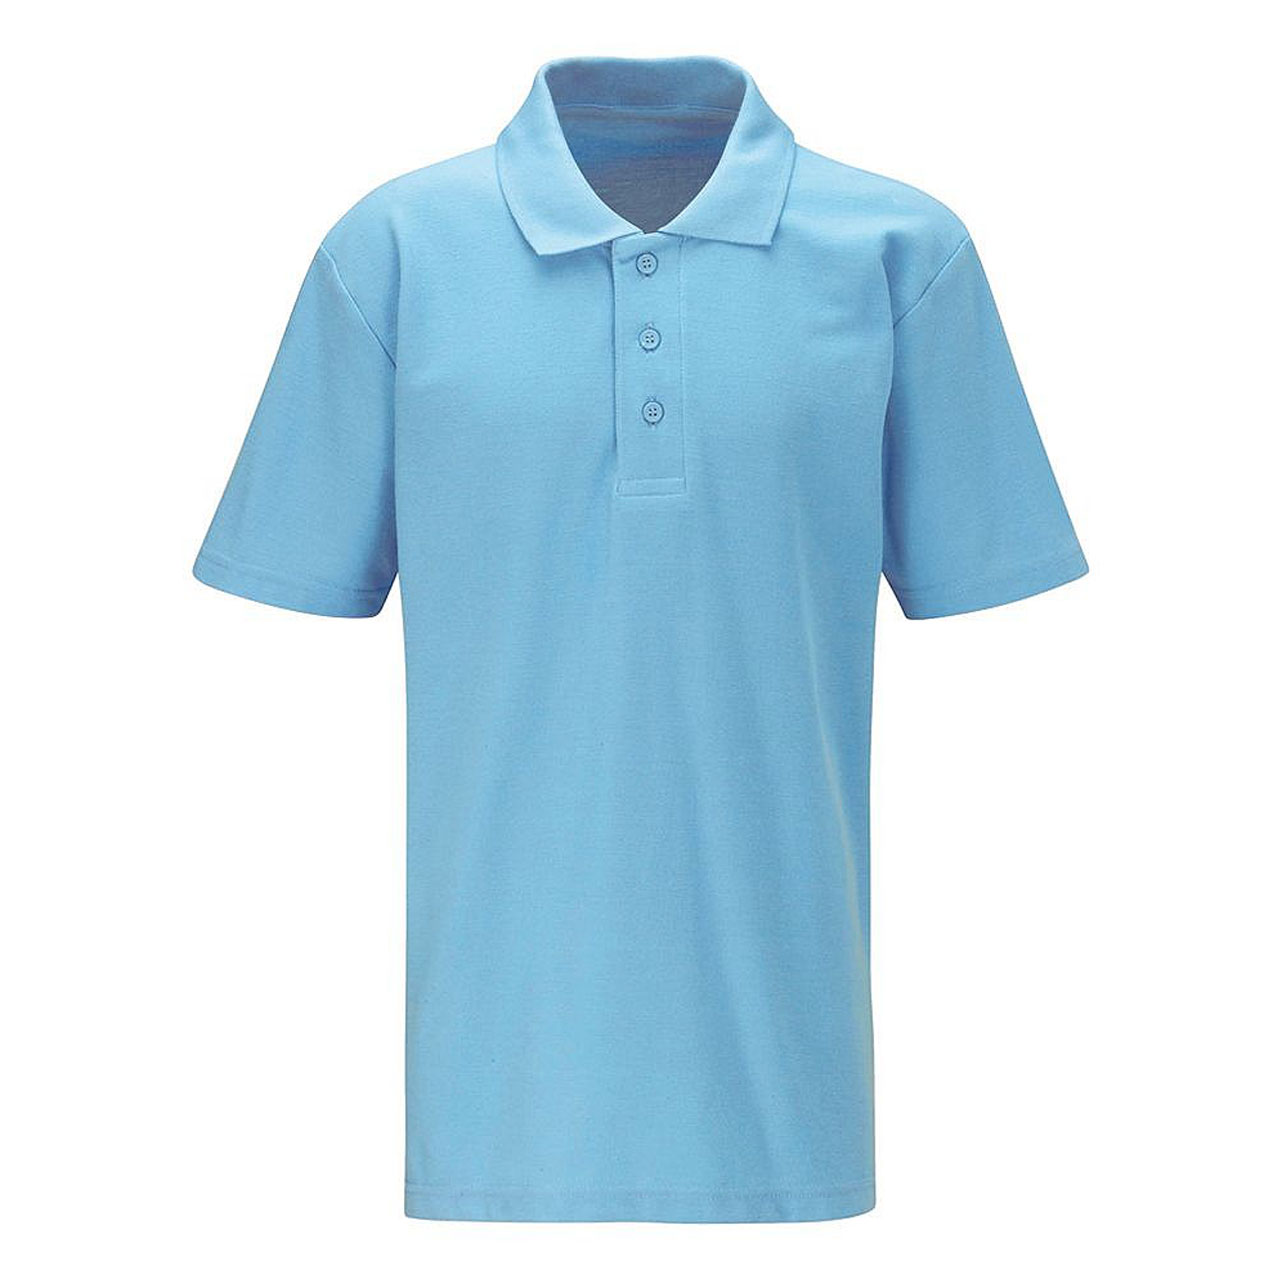 Embroidered Schoolwear Sky Blue Polo Shirt